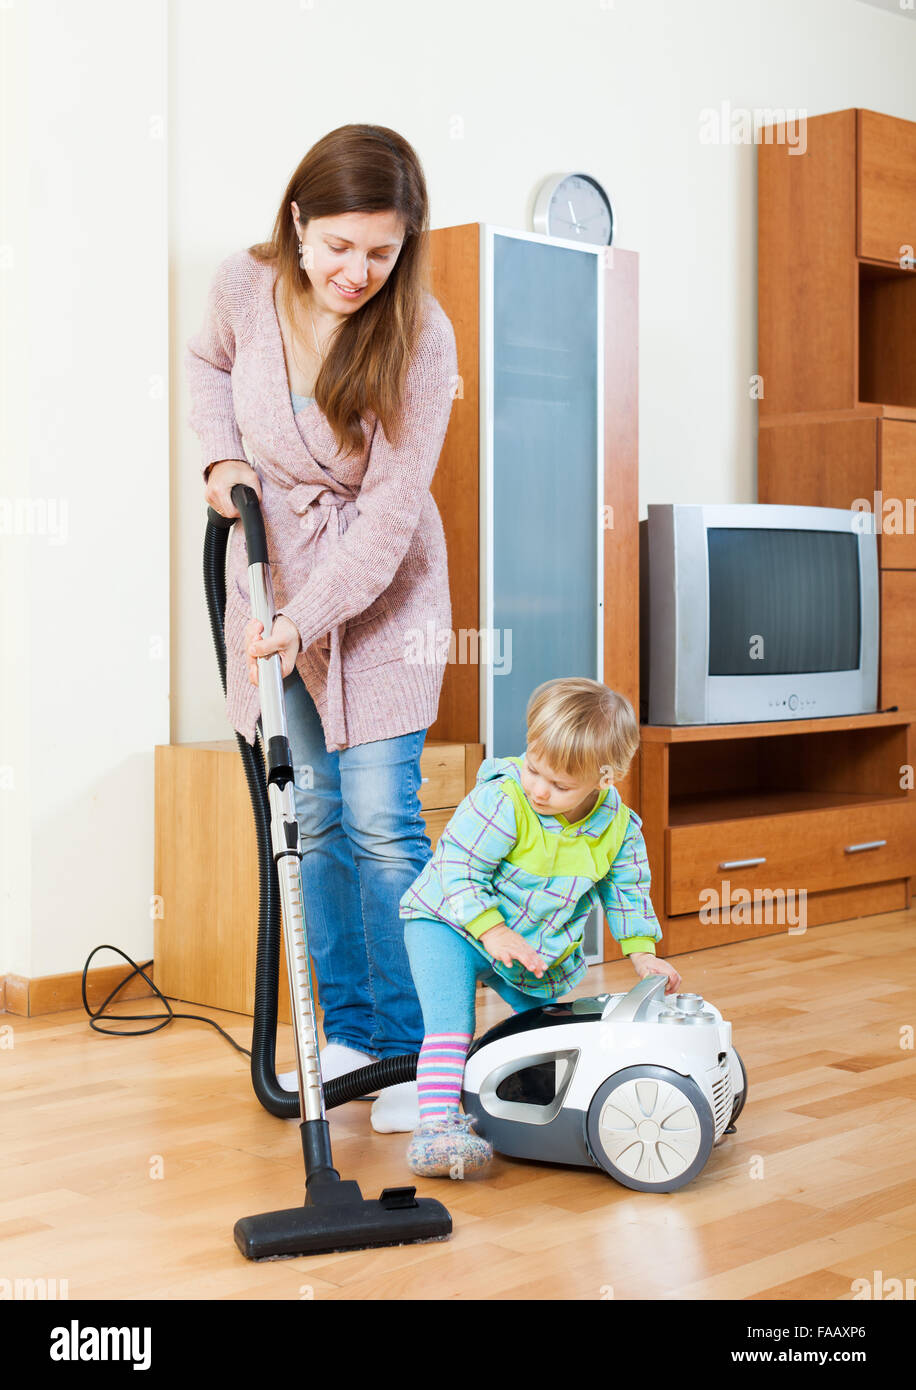 Smiling Girl With Baby Cleaning Living Room With Vacuum Cleaner Stock Photo - Alamy